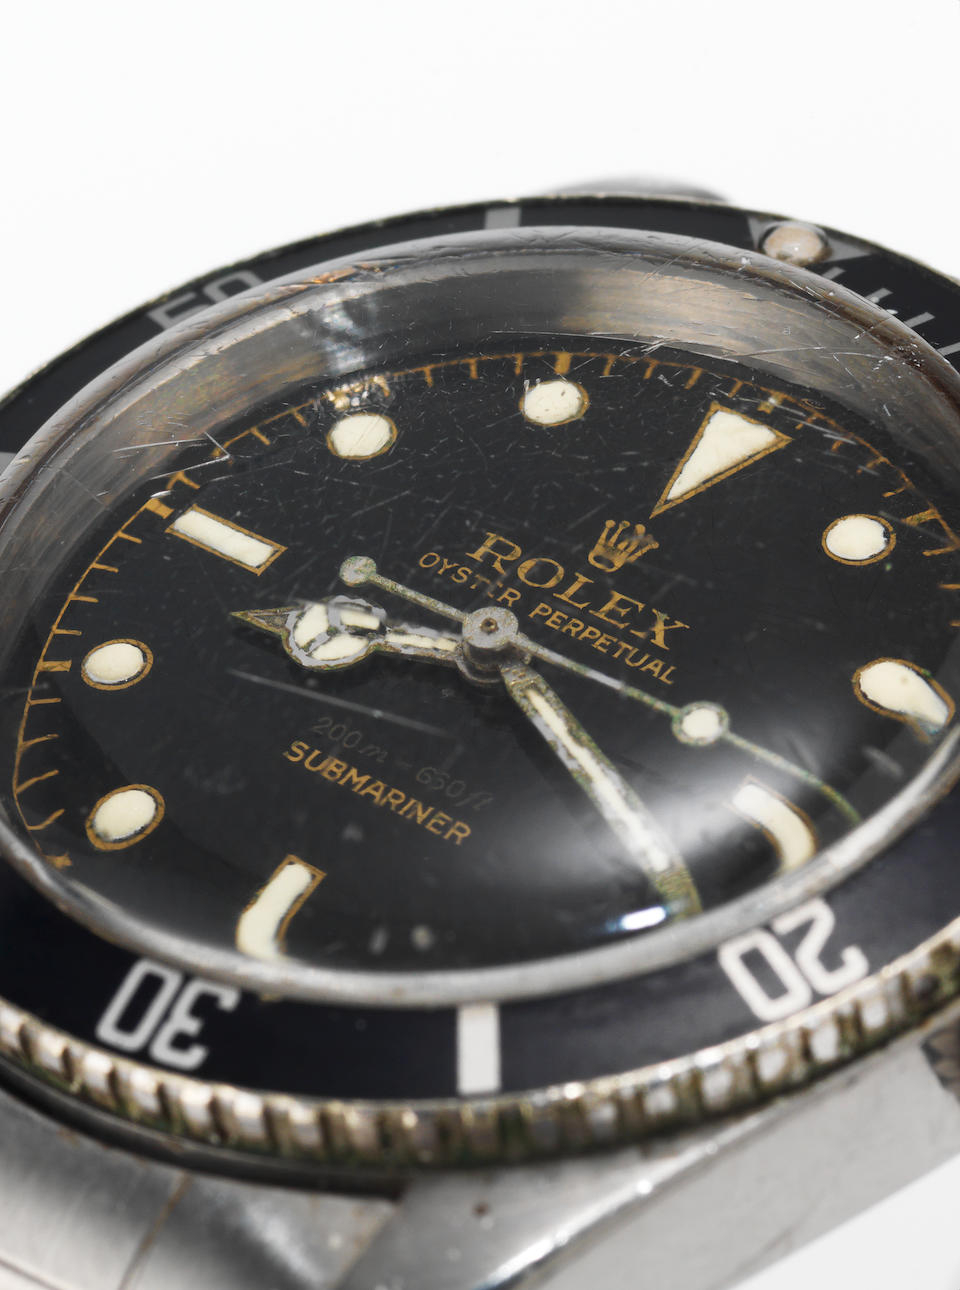 Rolex. A fine and rare stainless steel automatic centre seconds wristwatch together with Royal Navy diving log sheetOyster Perpetual, 200m=660ft, Submariner, Ref:5510, Case No.362252, Made in 1958, Sold in 1958